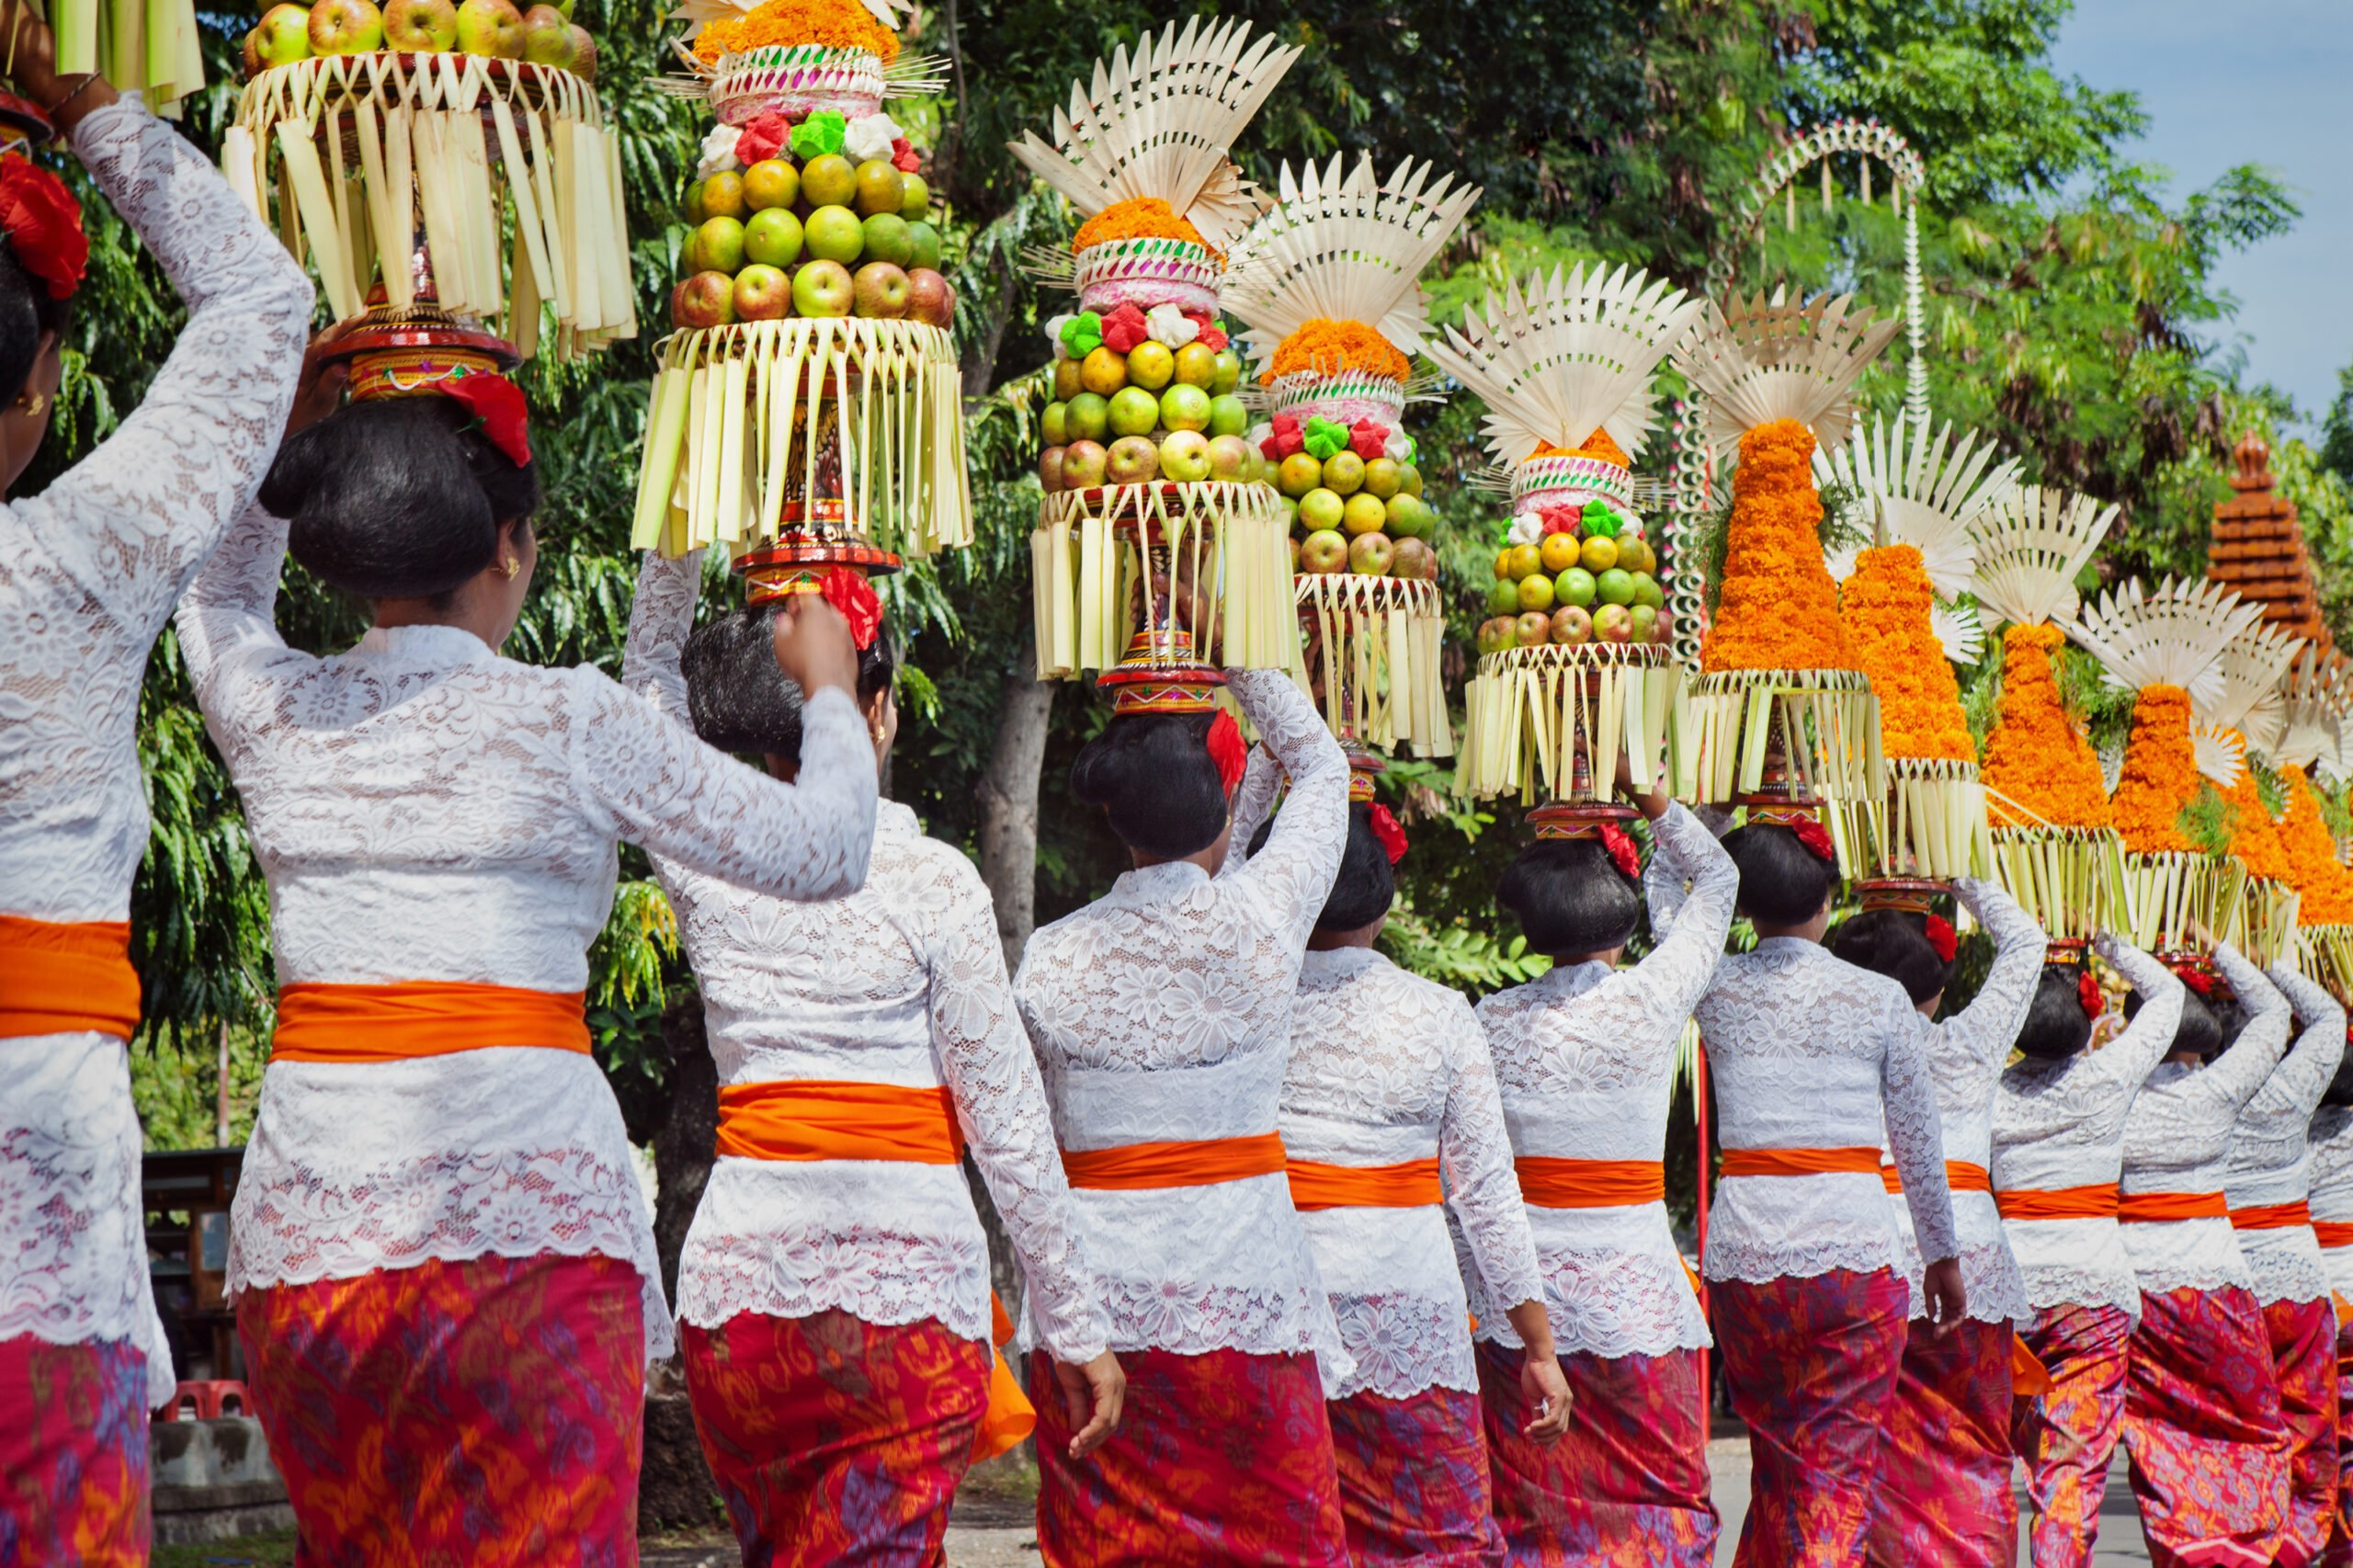 Balinese women in traditional costumes, Bali, Indonesia